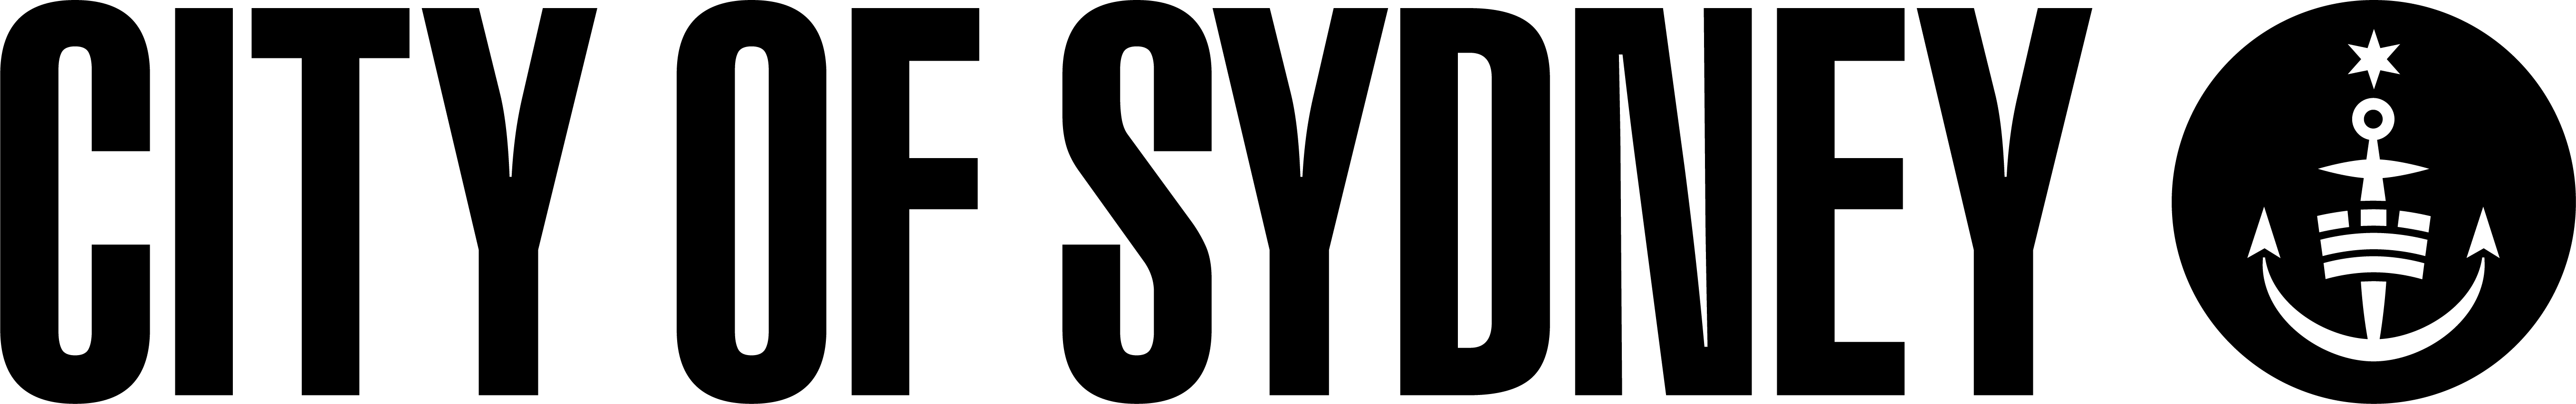 Powered by the City of Sydney